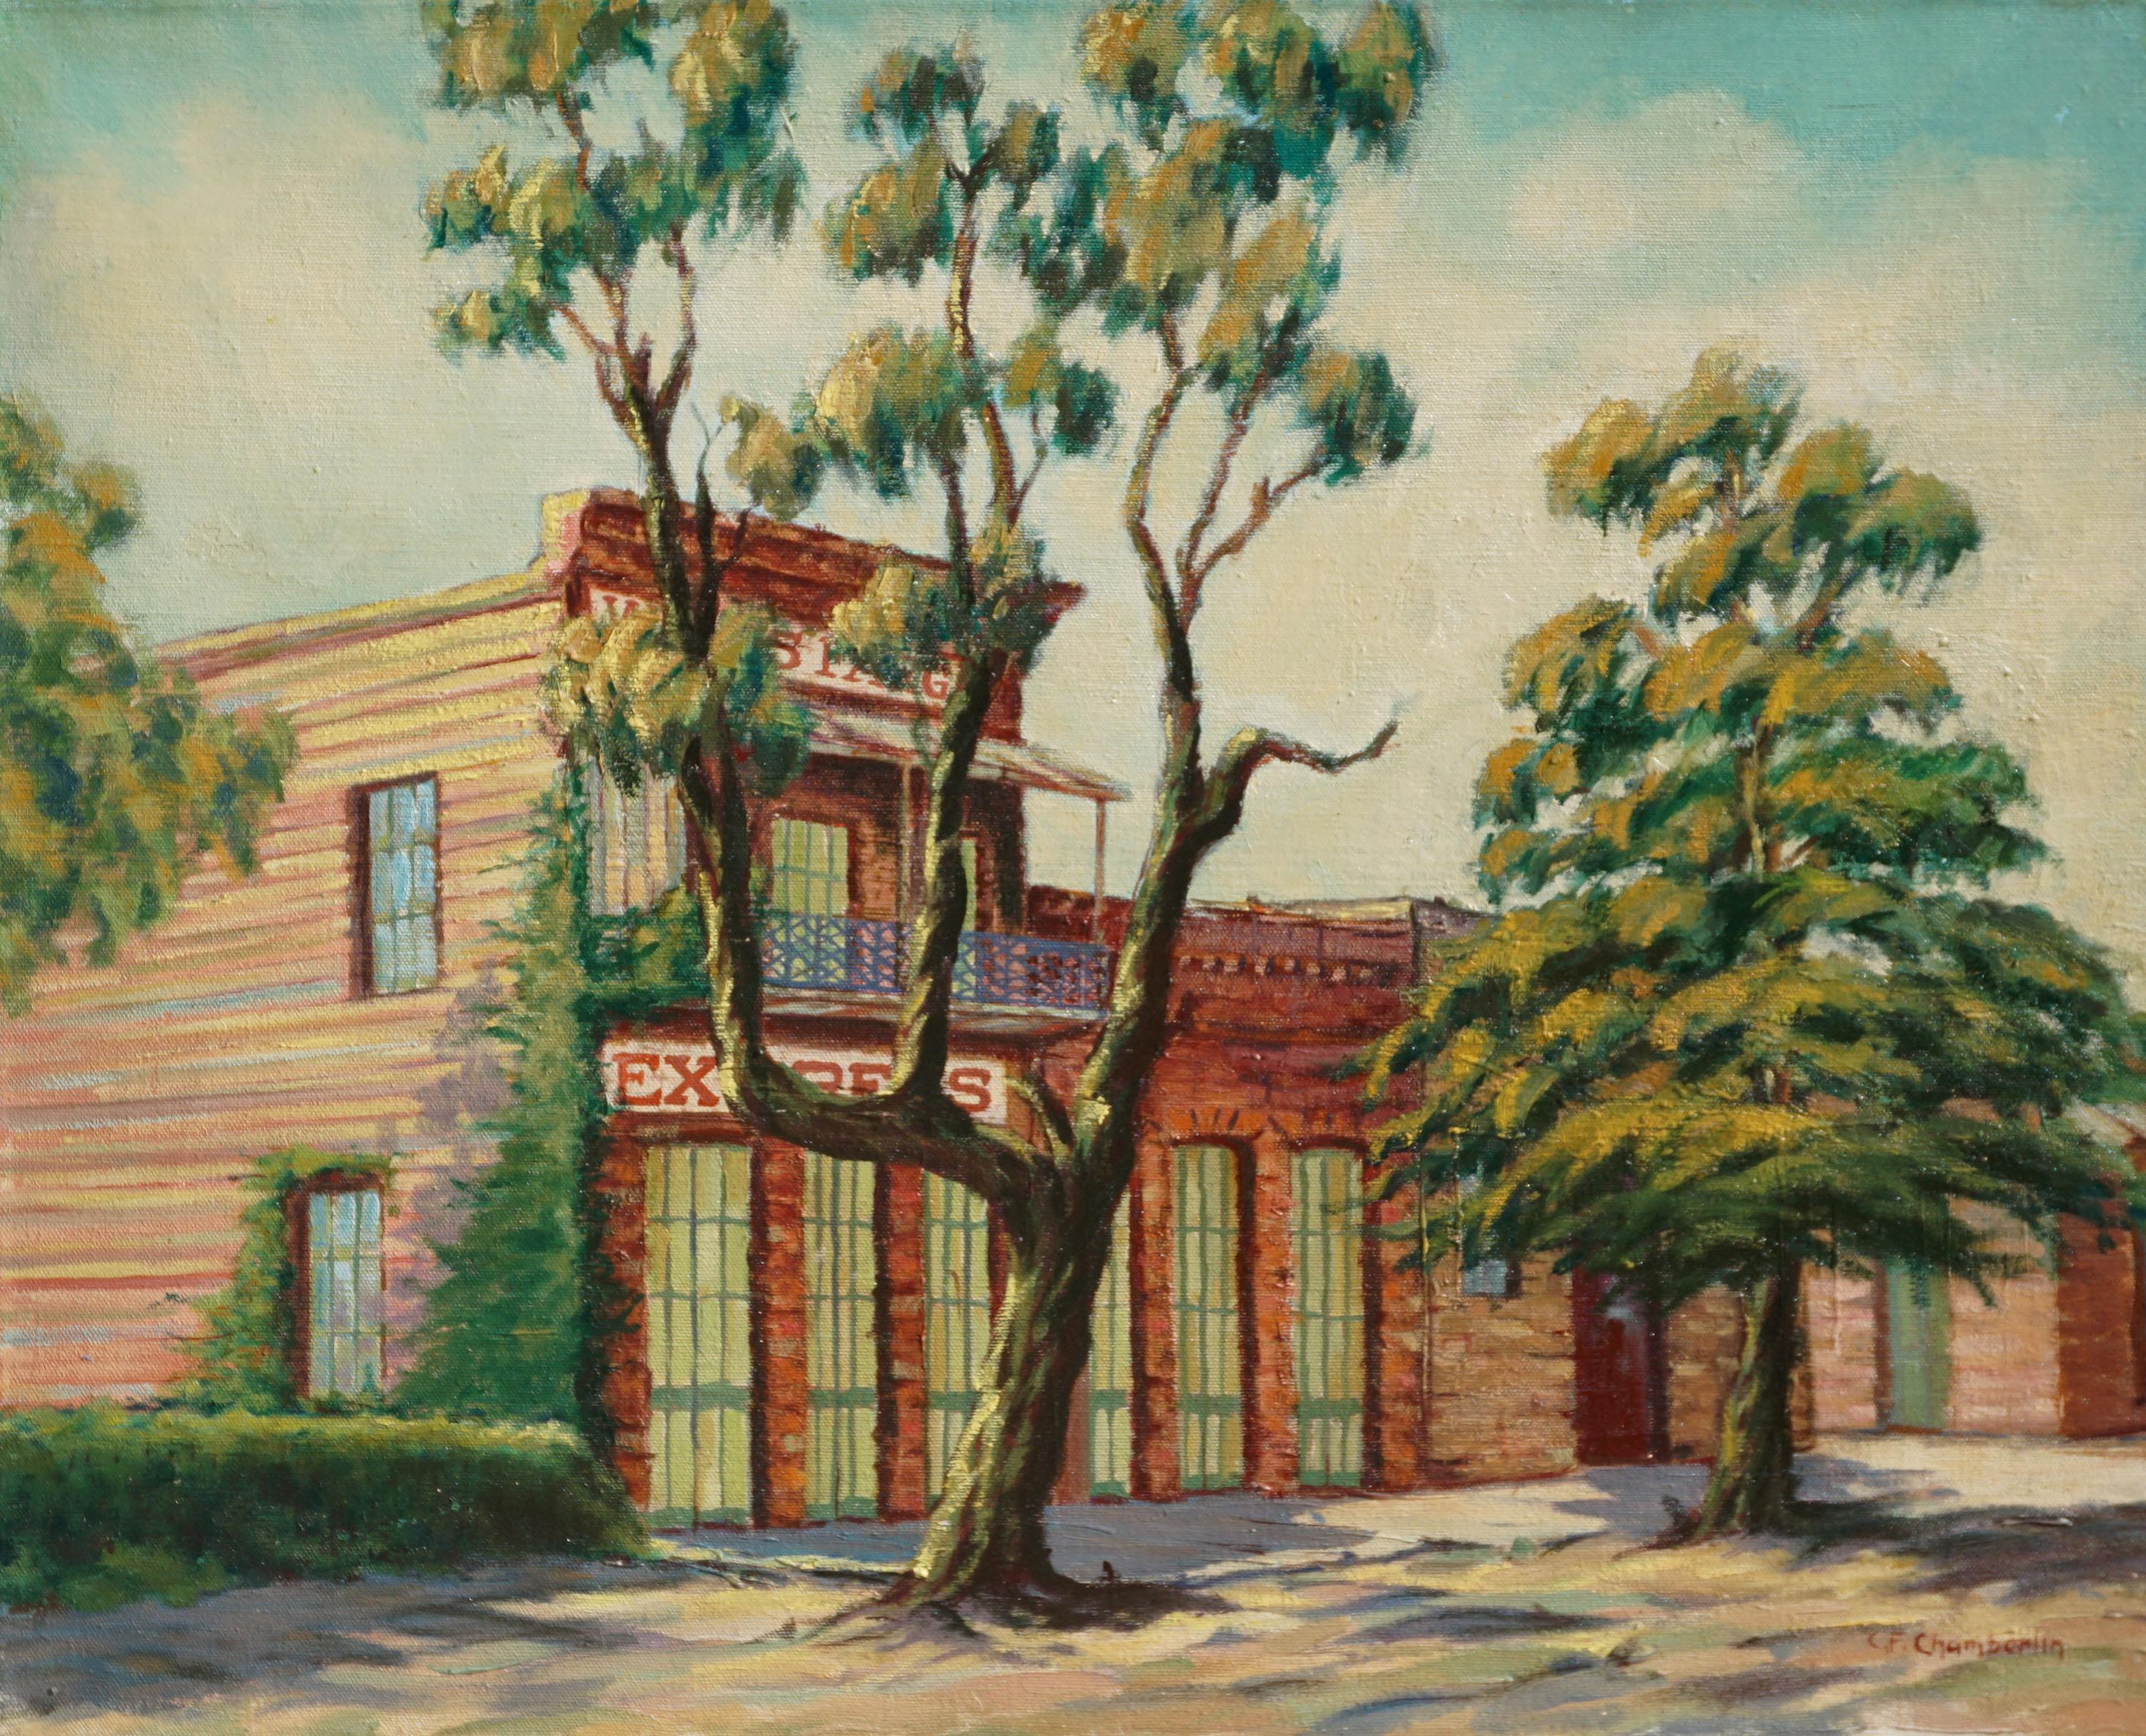 Wells Fargo Express, Gold Country - Columbia, California Mid Century Landscape